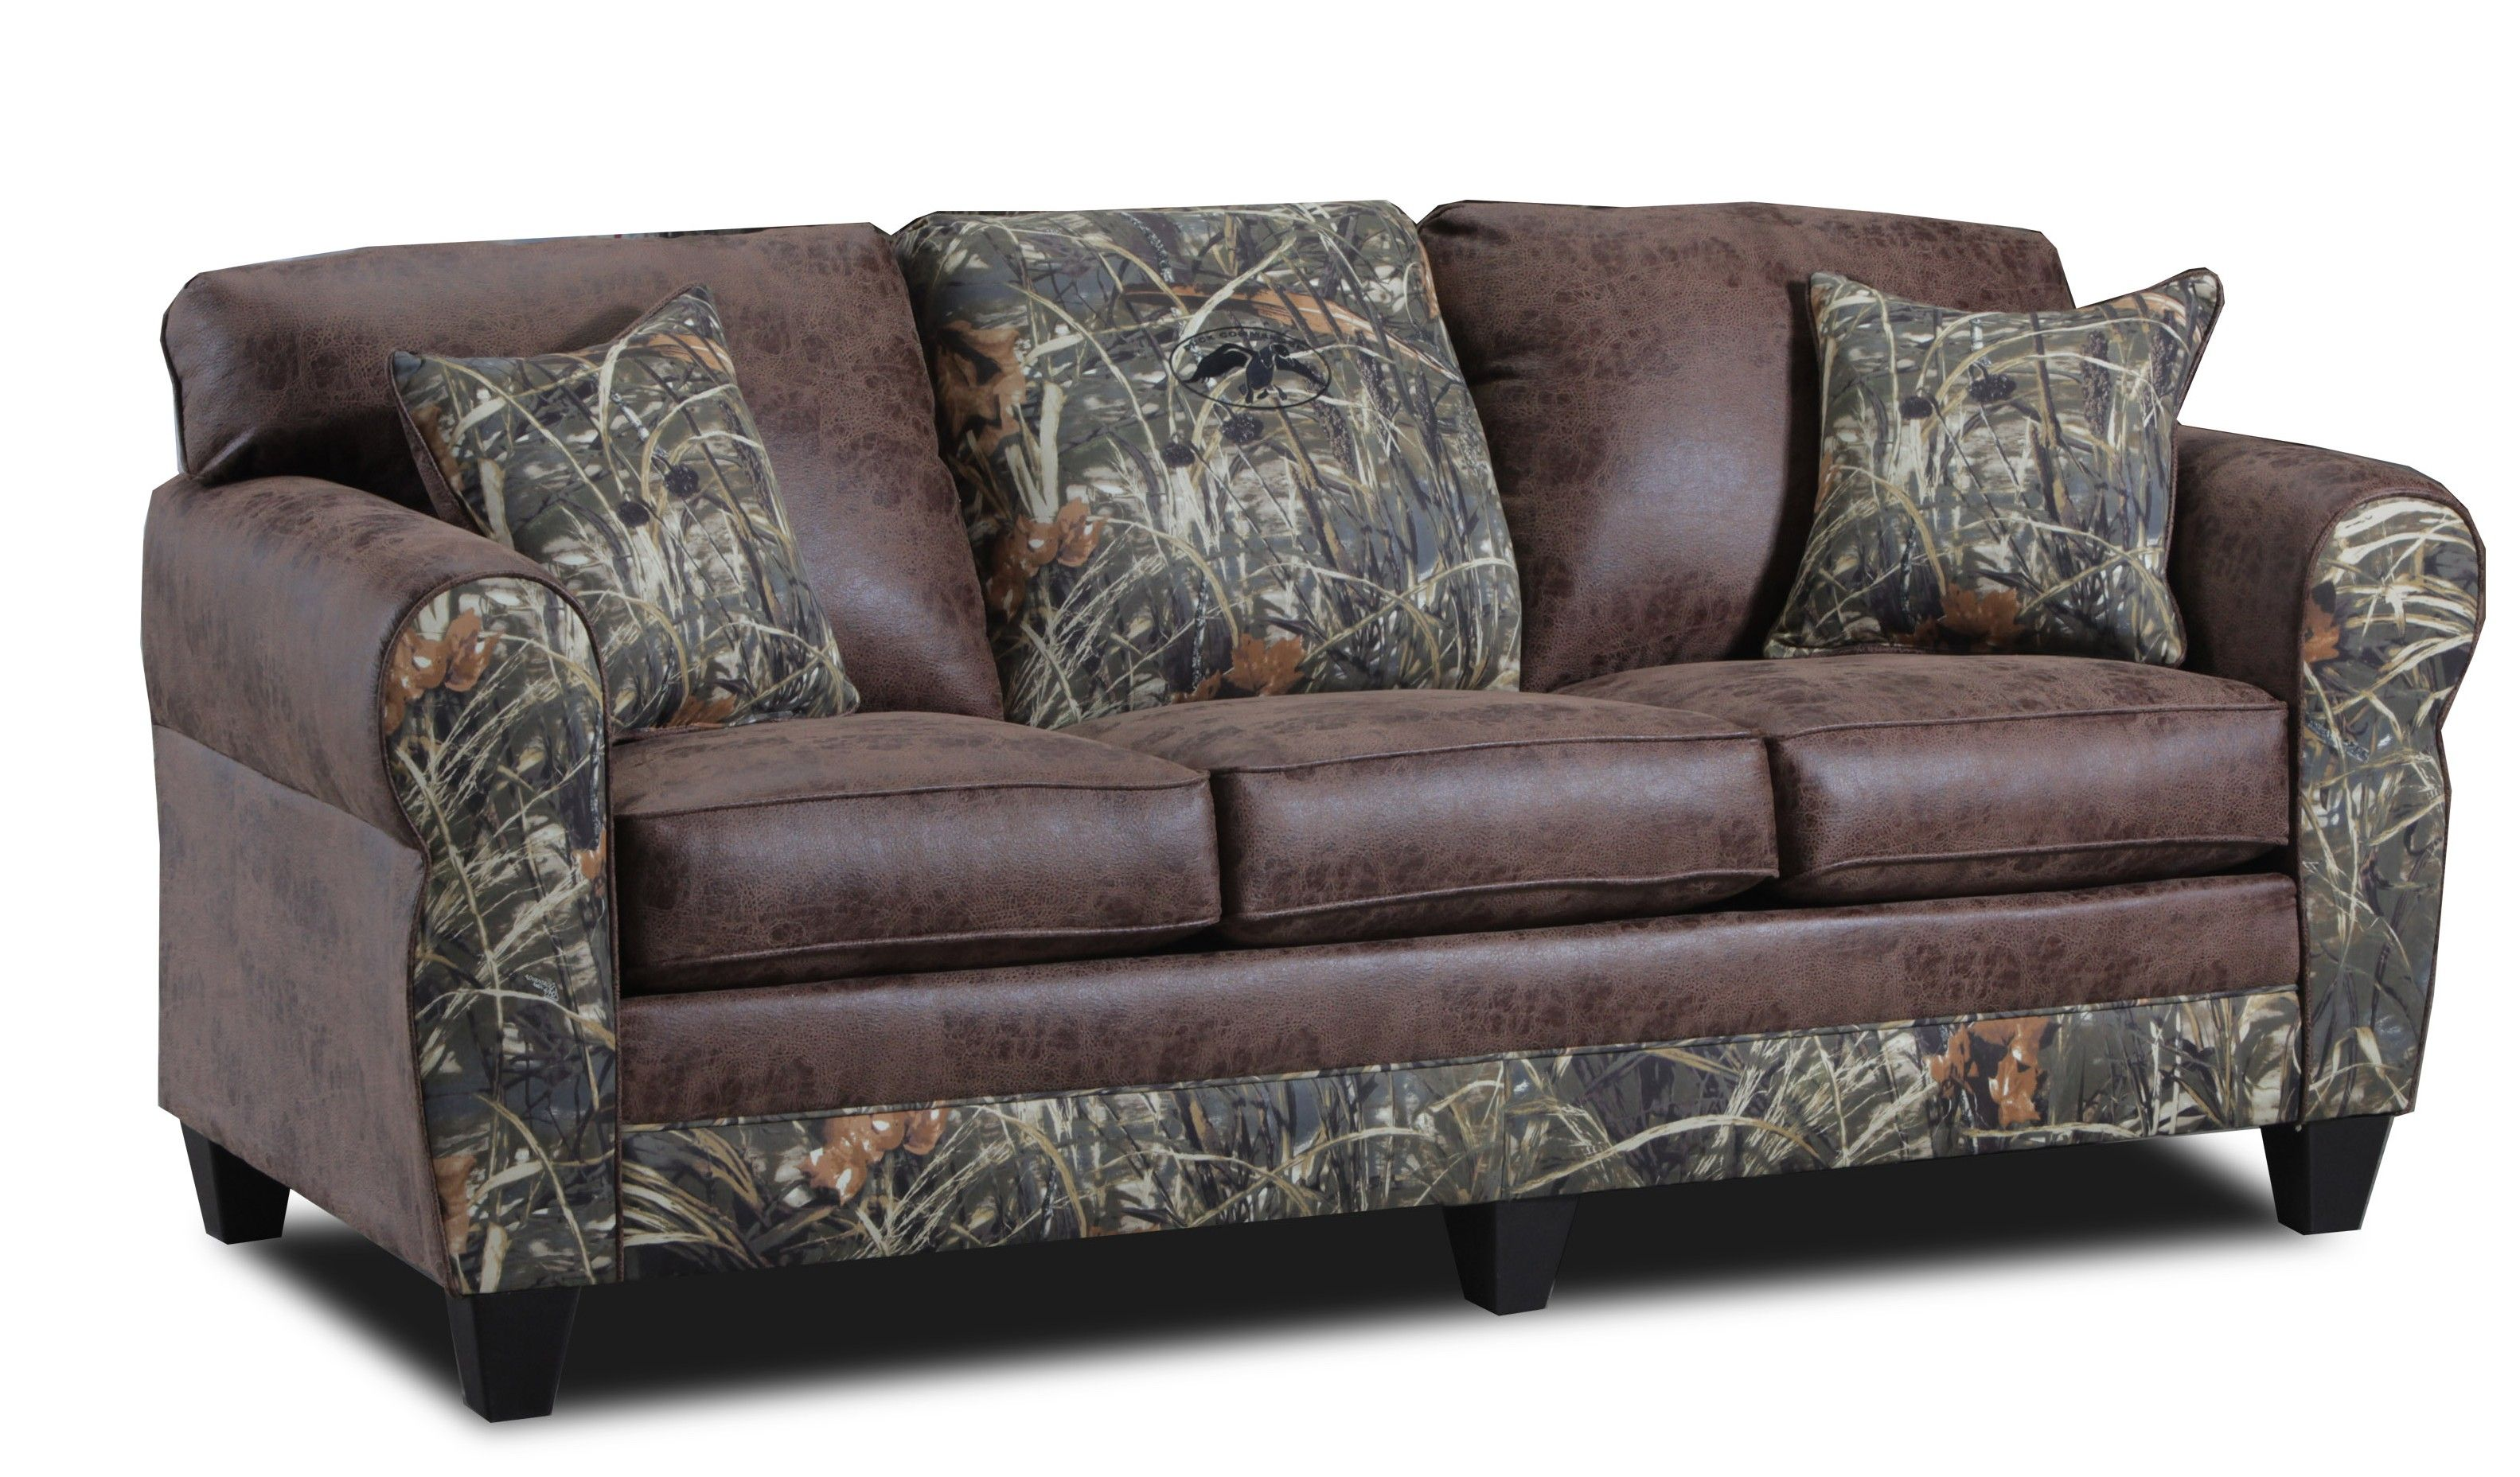 duck commander sofa in colorado coffee real tree max 4 twill duck